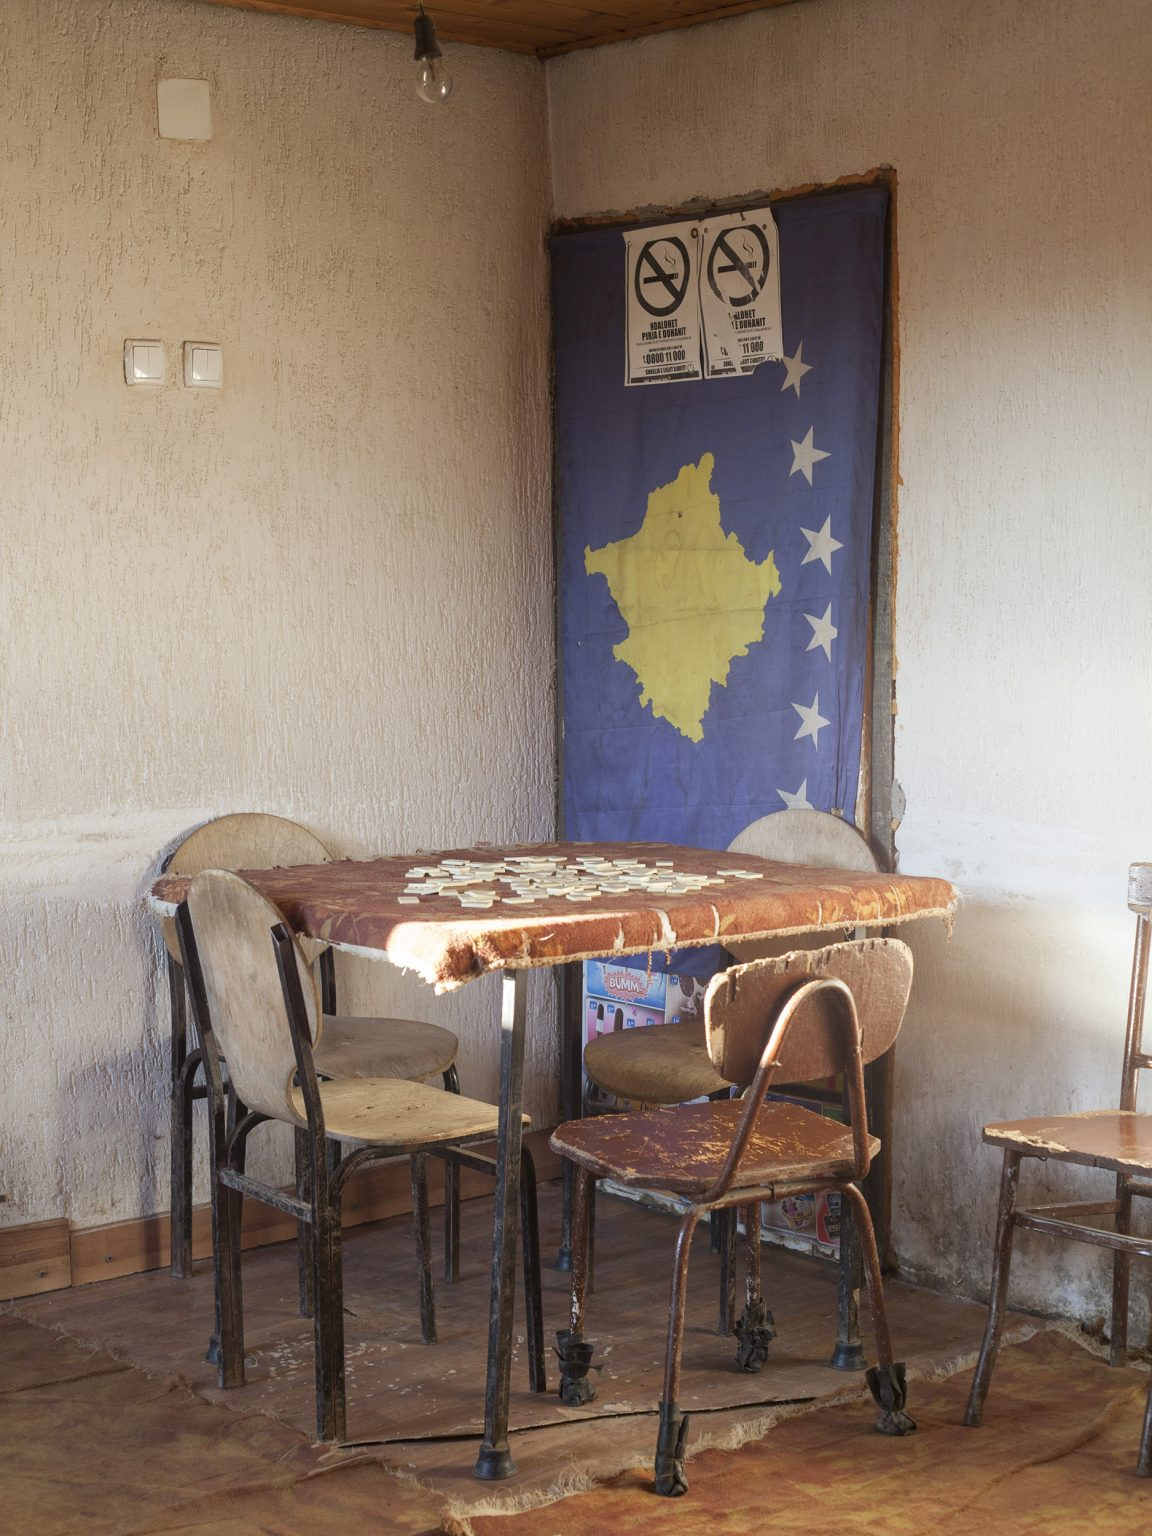 View of a cafe in the village of Rakinic, near Skënderaj / Srbica. The population of this region, a stronghold of the KLA (Kosovo Liberation Army) during the war, is considered very attached to the Albanian nationalistic values.